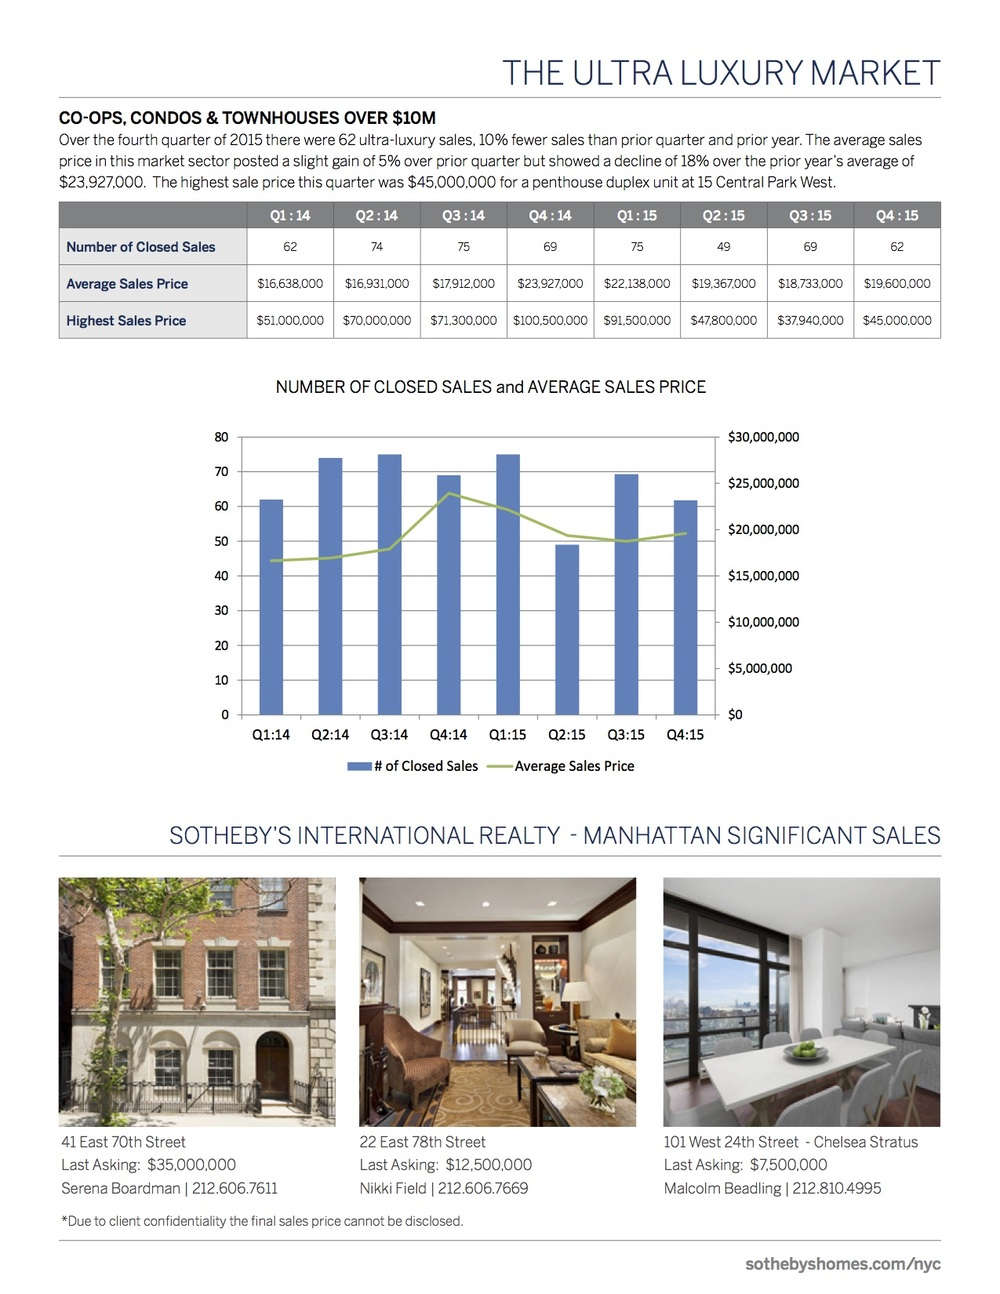 SothebysInternationalRealty_Manhattan_MarketReport_2015_Q4_4.jpg